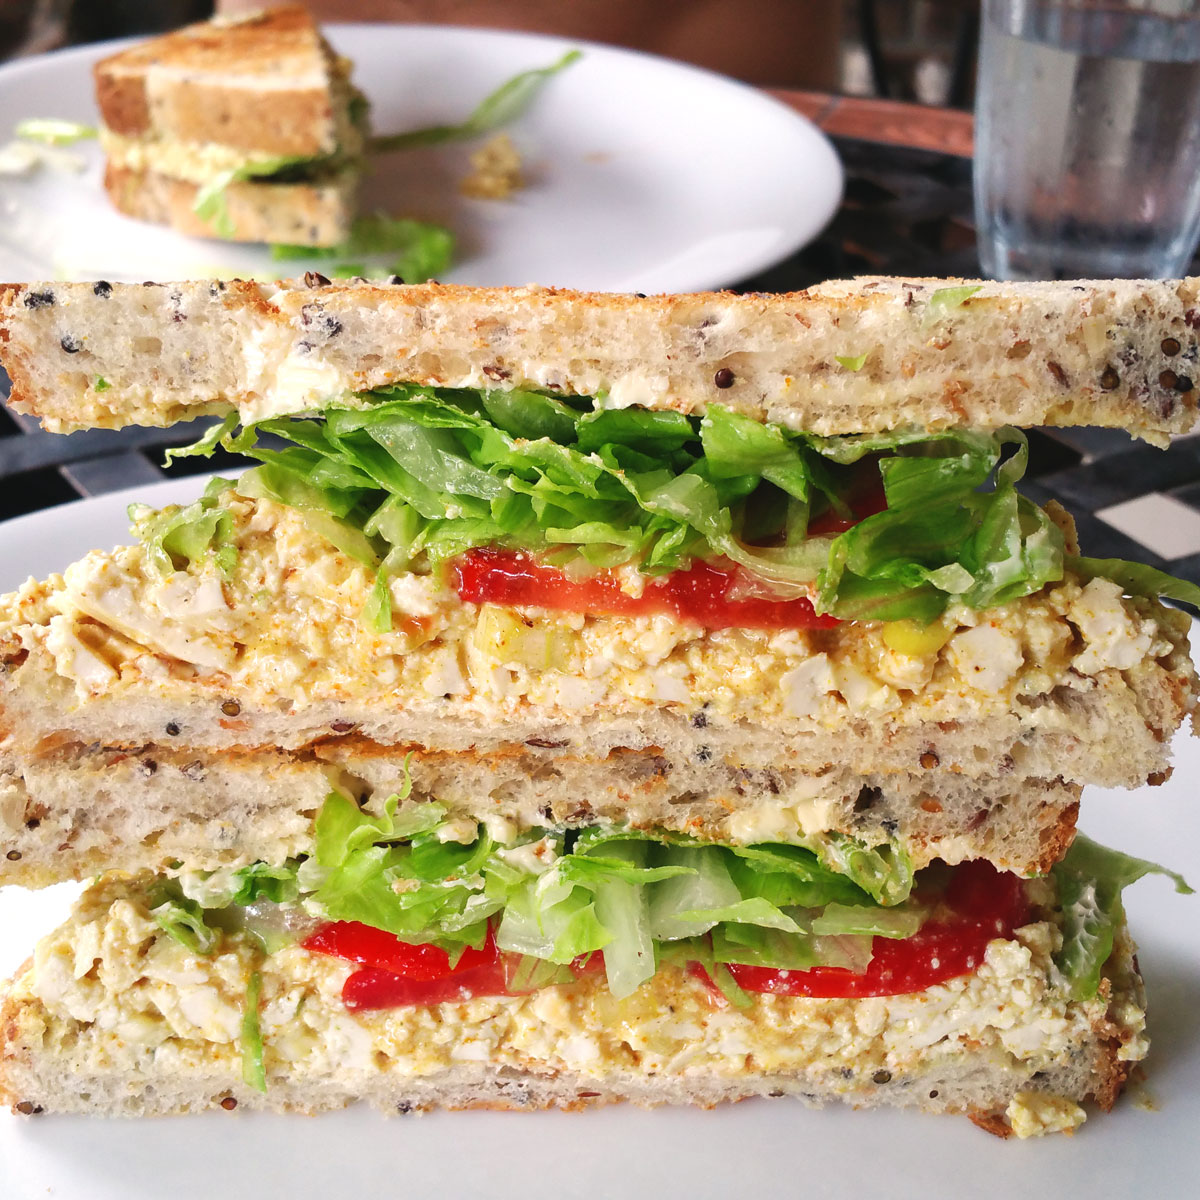 Vegan Curried Egg Sandwiches